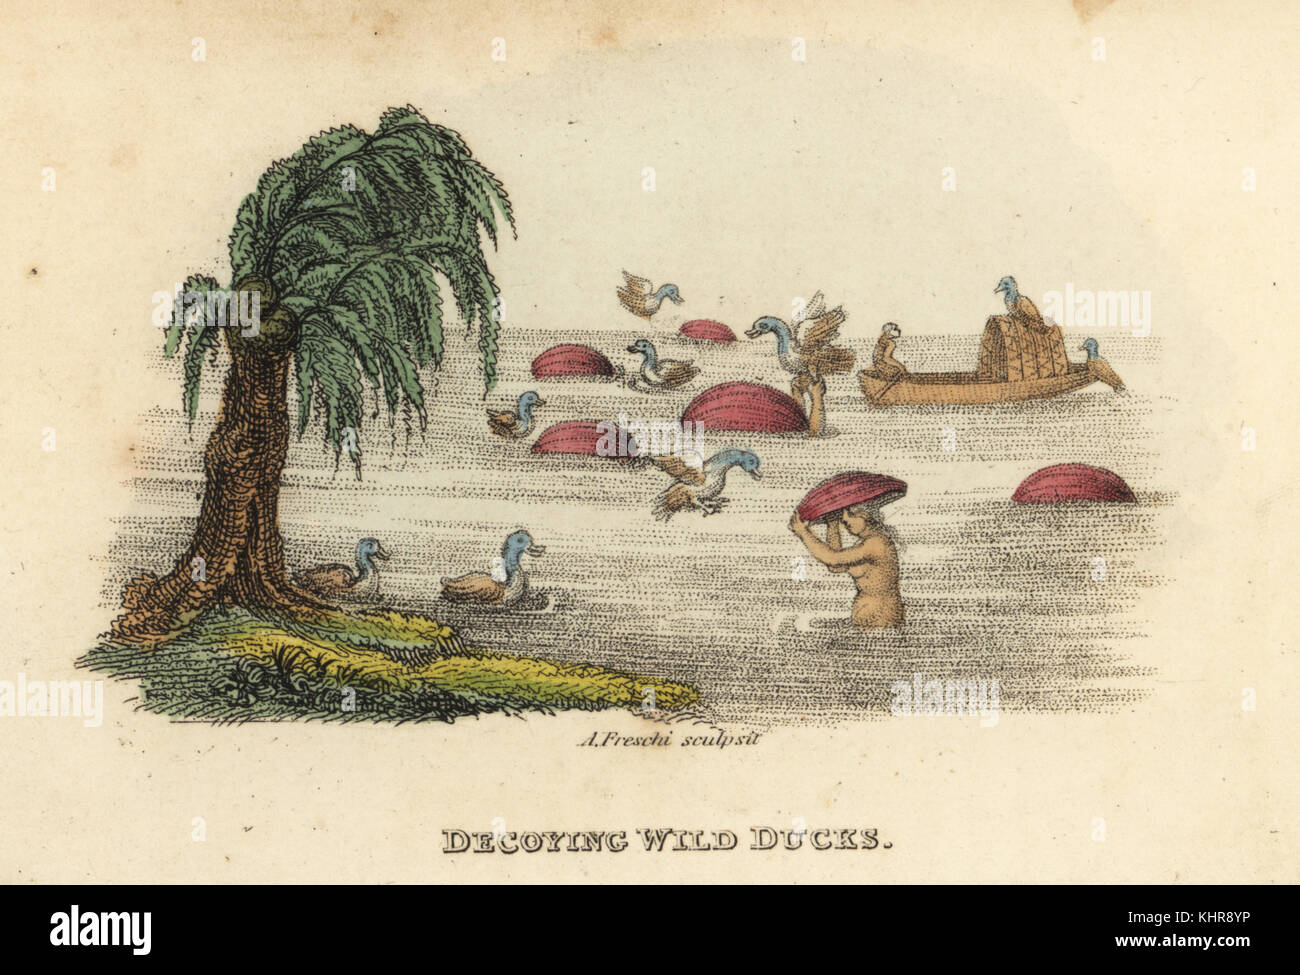 Chinese men hunting wild ducks with decoy gourd hats in the river, Qing Dynasty. Handcoloured copperplate engraving - Stock Image